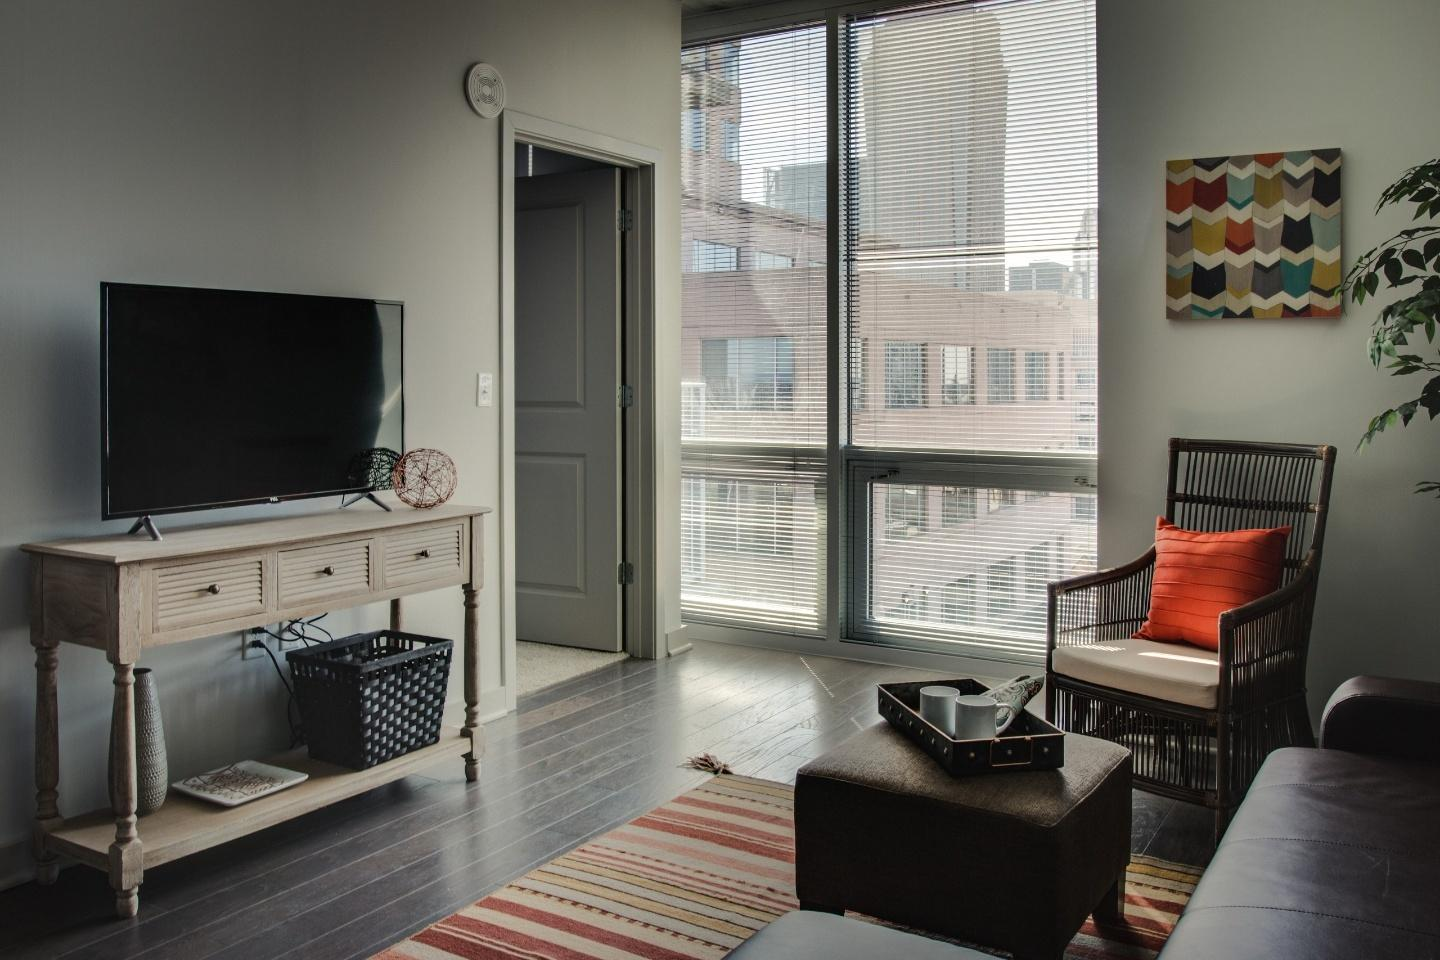 Incredible 1br in Uptown highrise near everything Slide-20